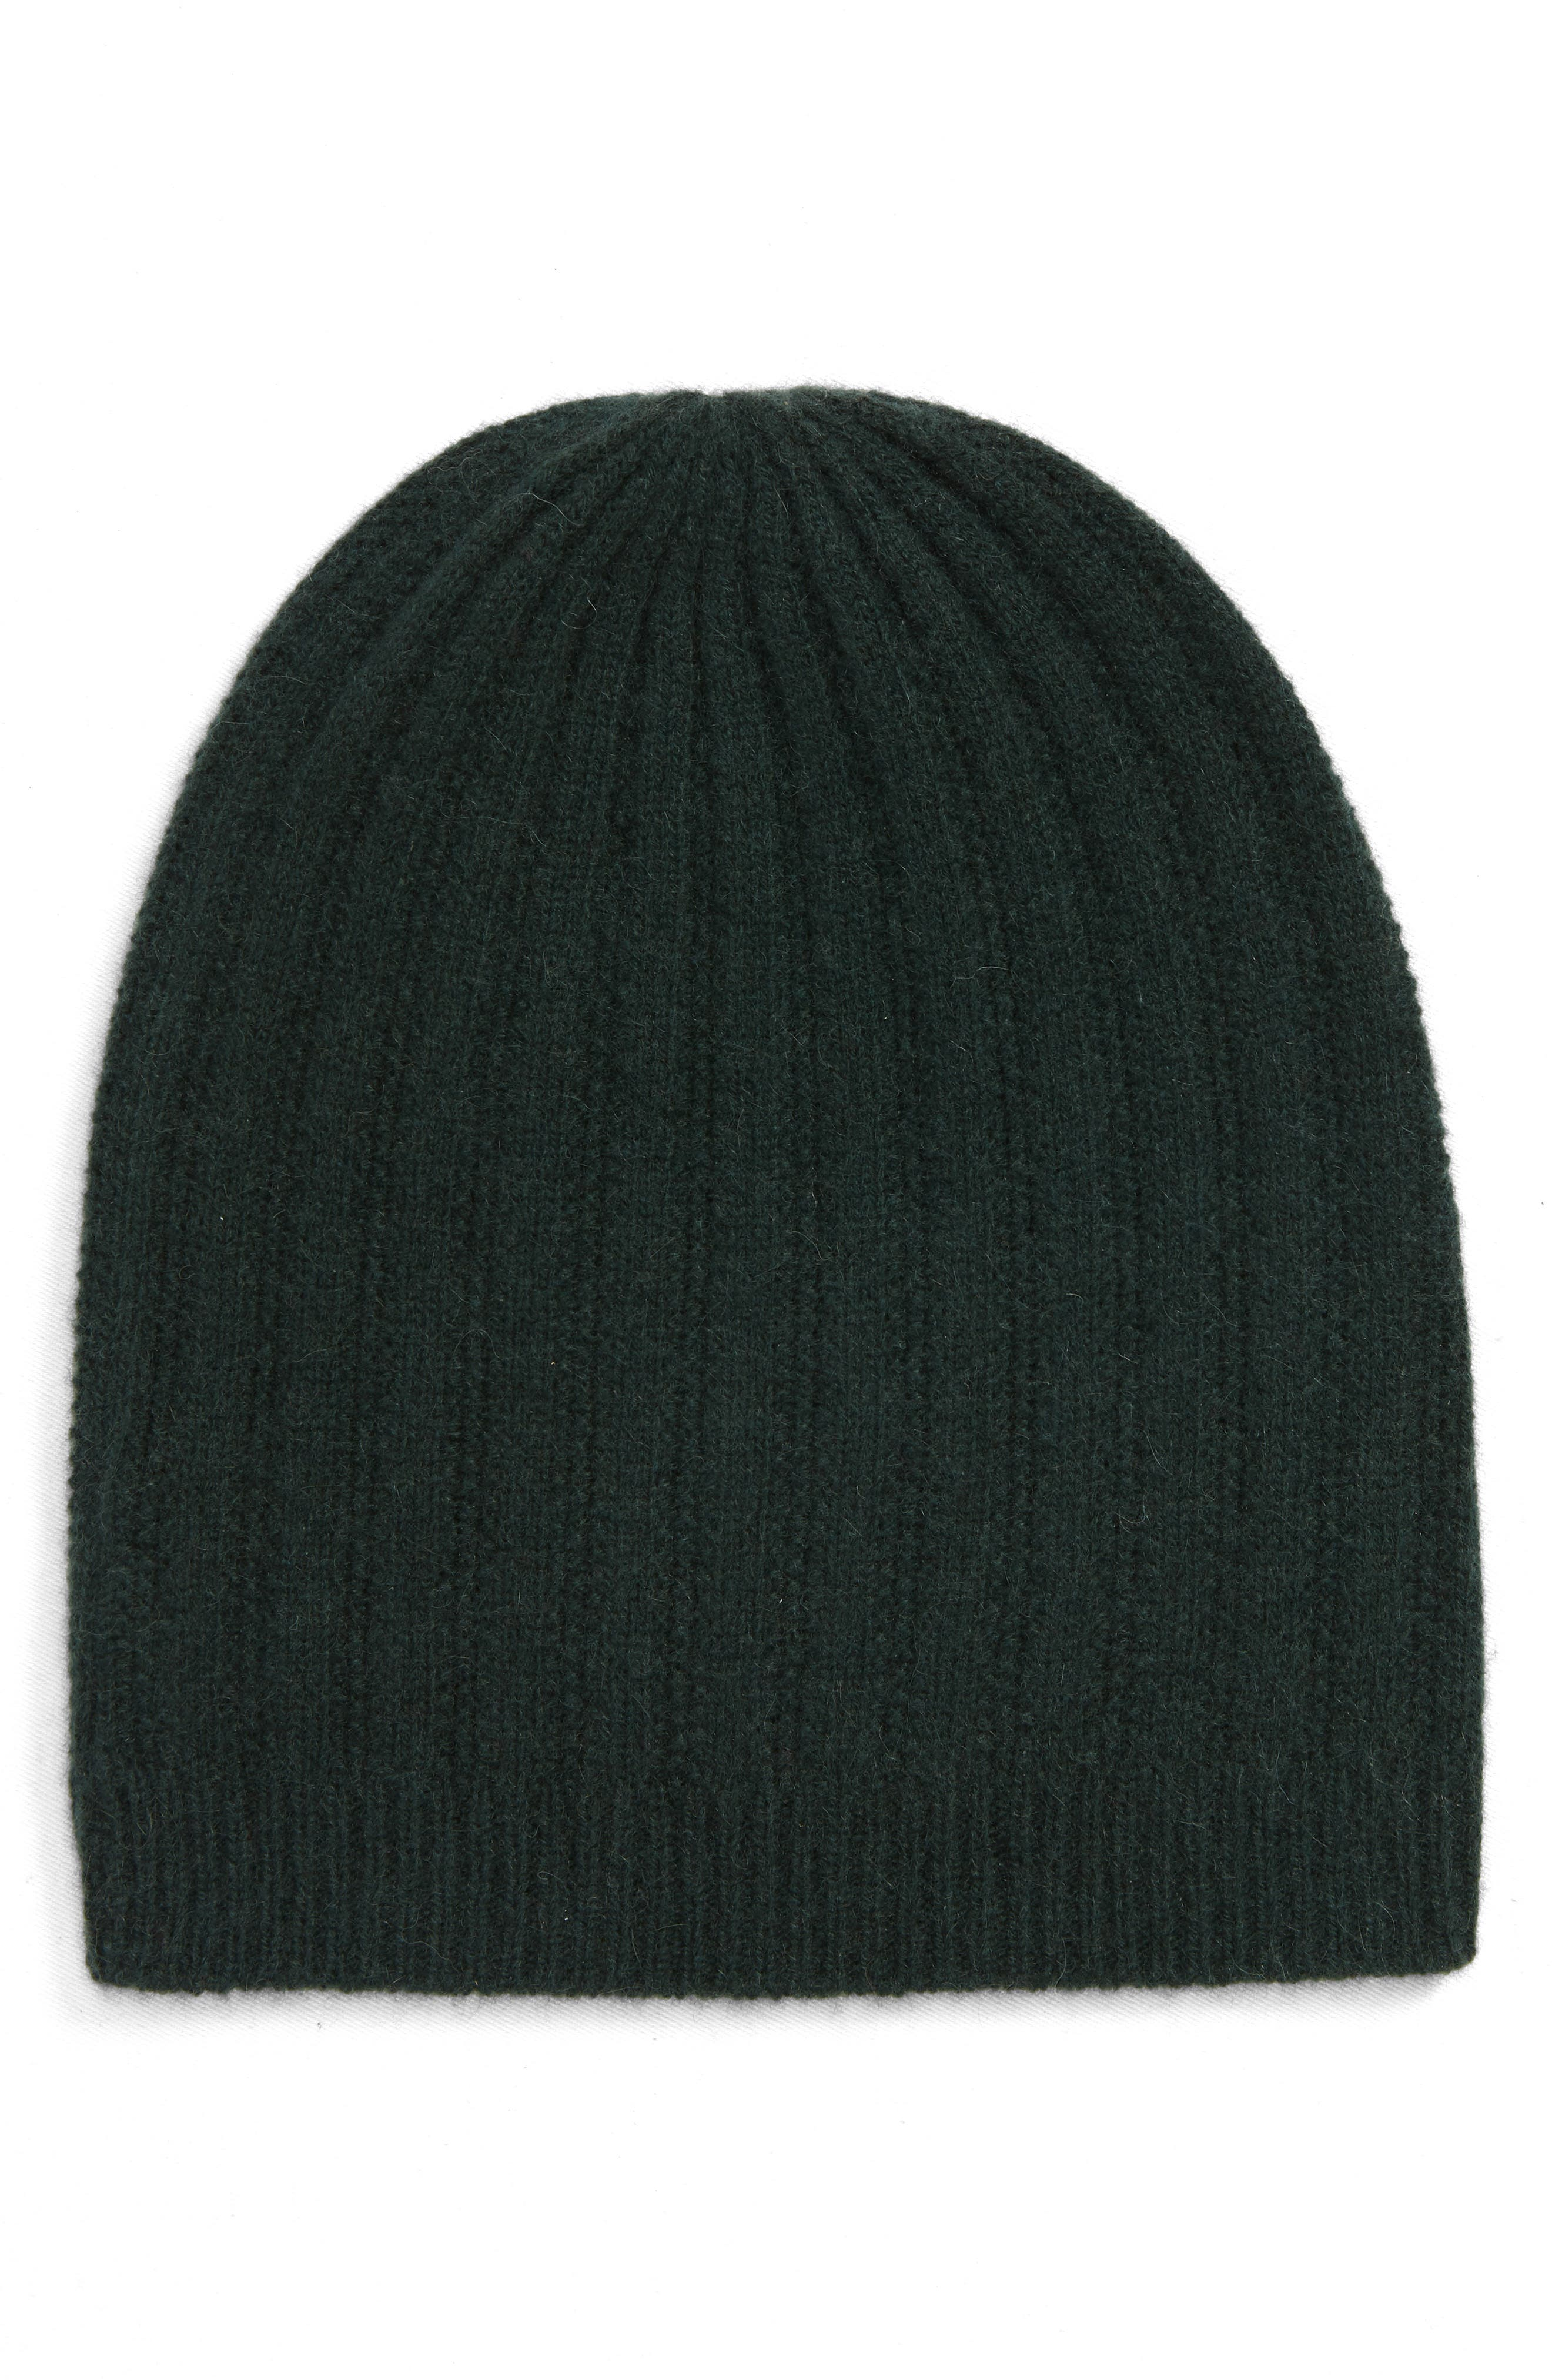 Halogen Ribbed Cashmere Beanie - Green